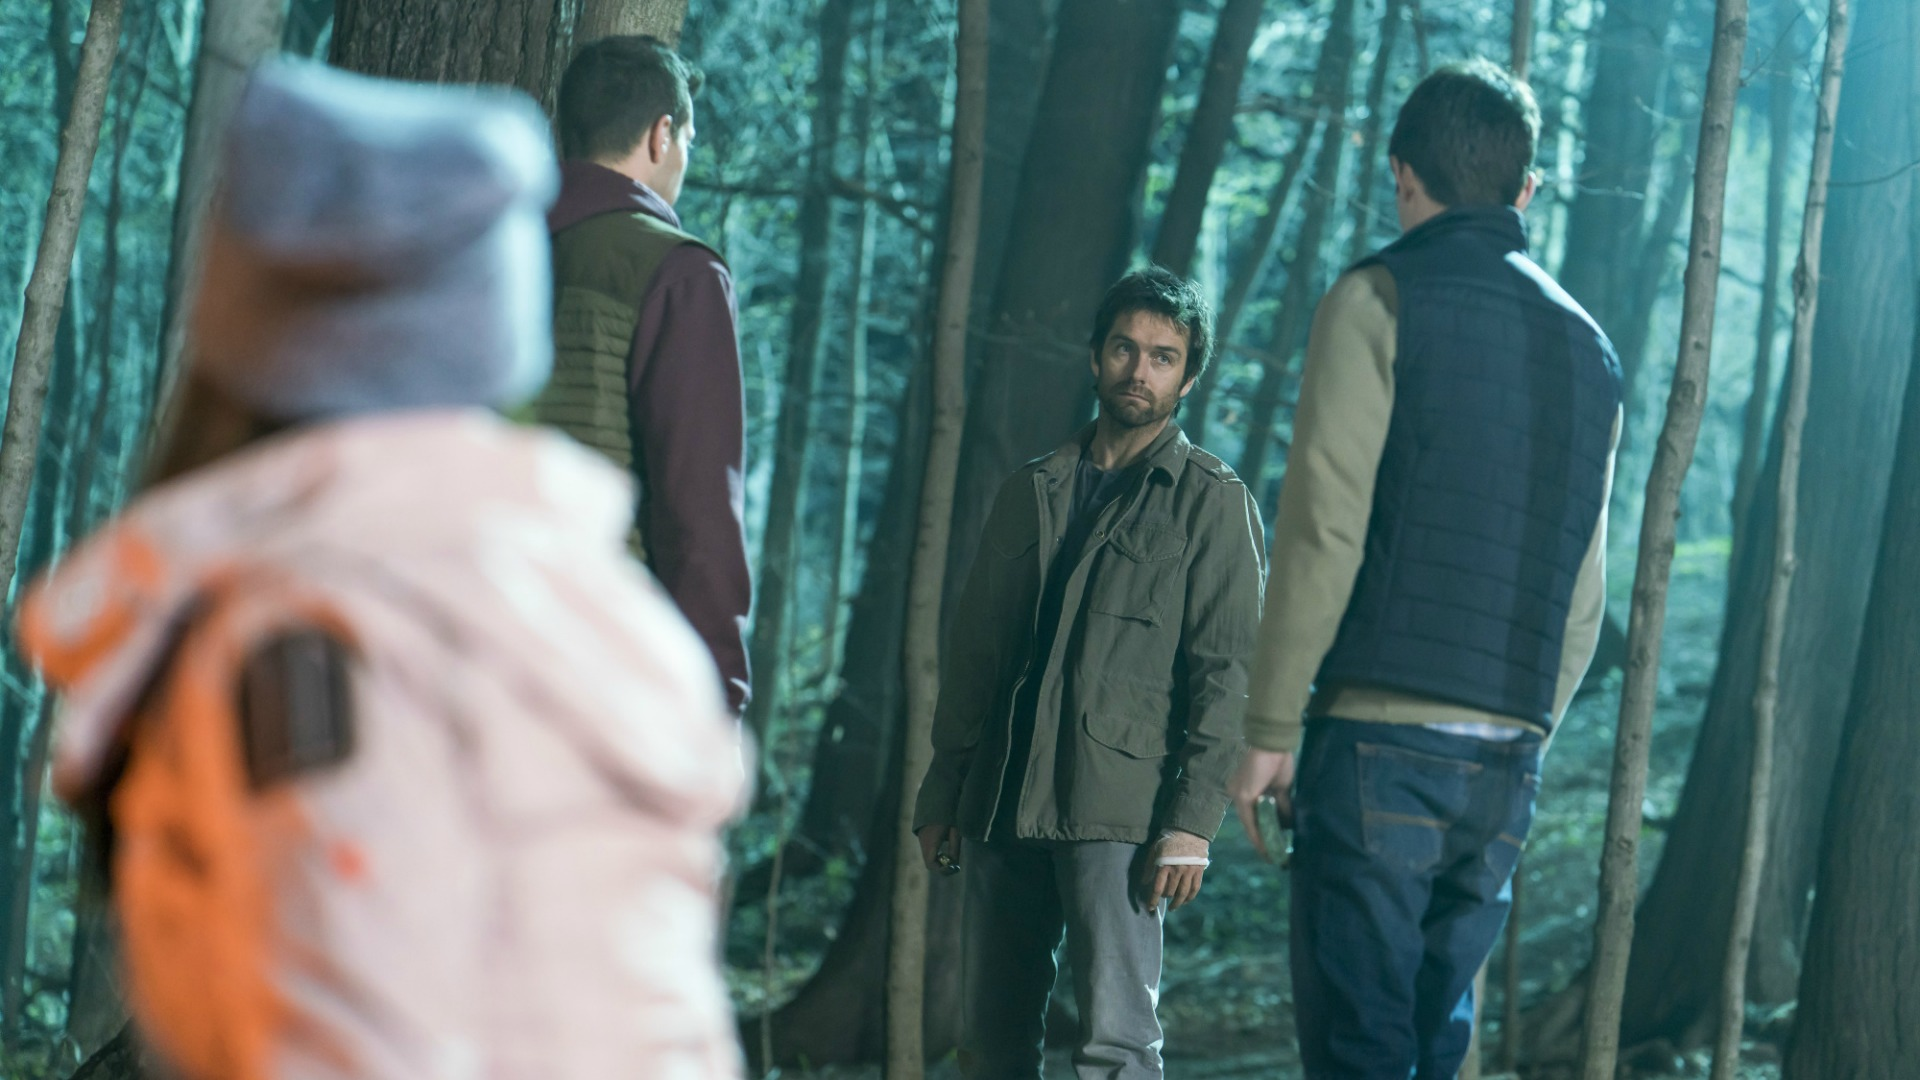 Garrett confronts a pair of young men in the woods.